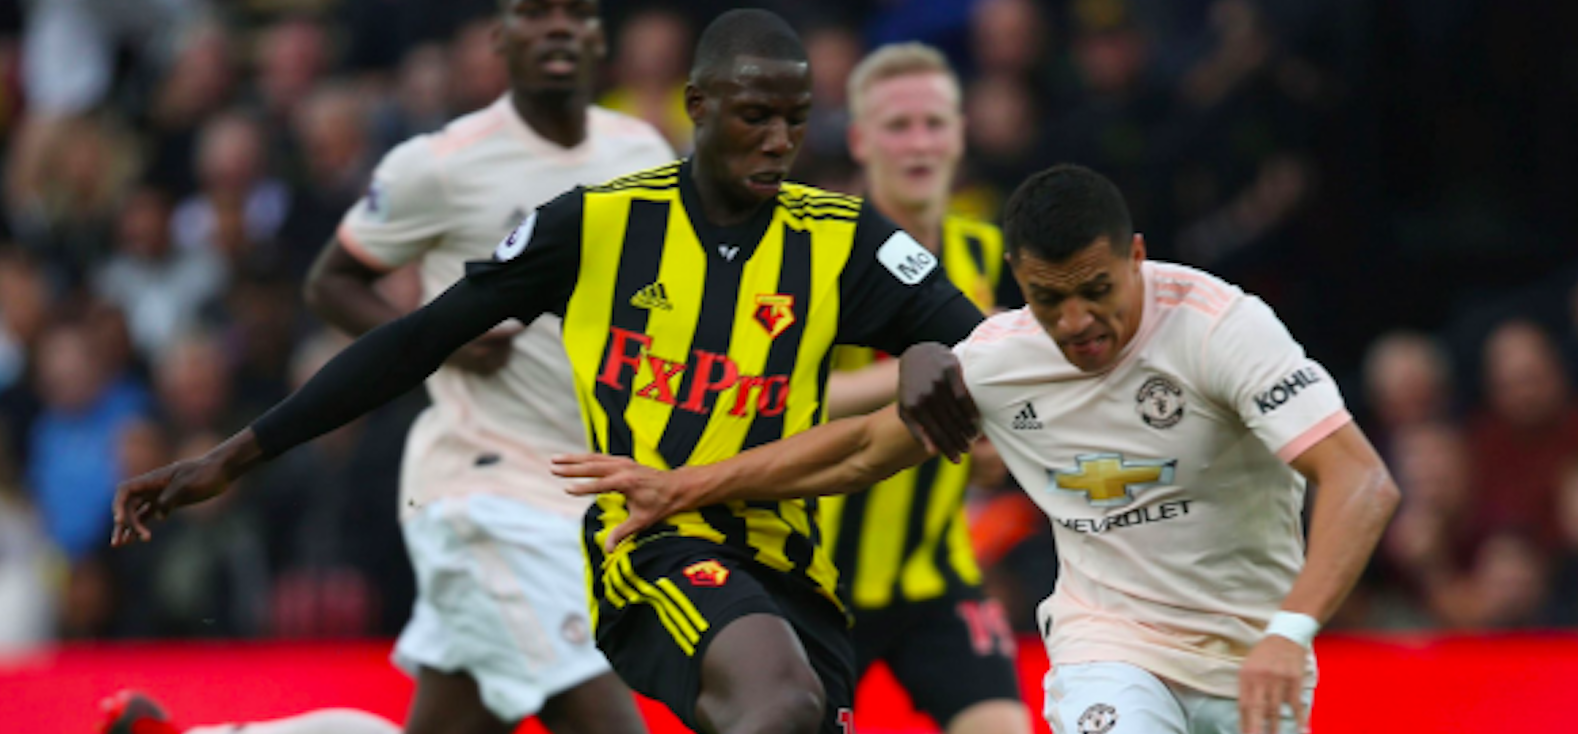 Manchester United vs Wolverhampton Wanderers: Potential XI with Marouane Fellaini and Alexis Sanchez